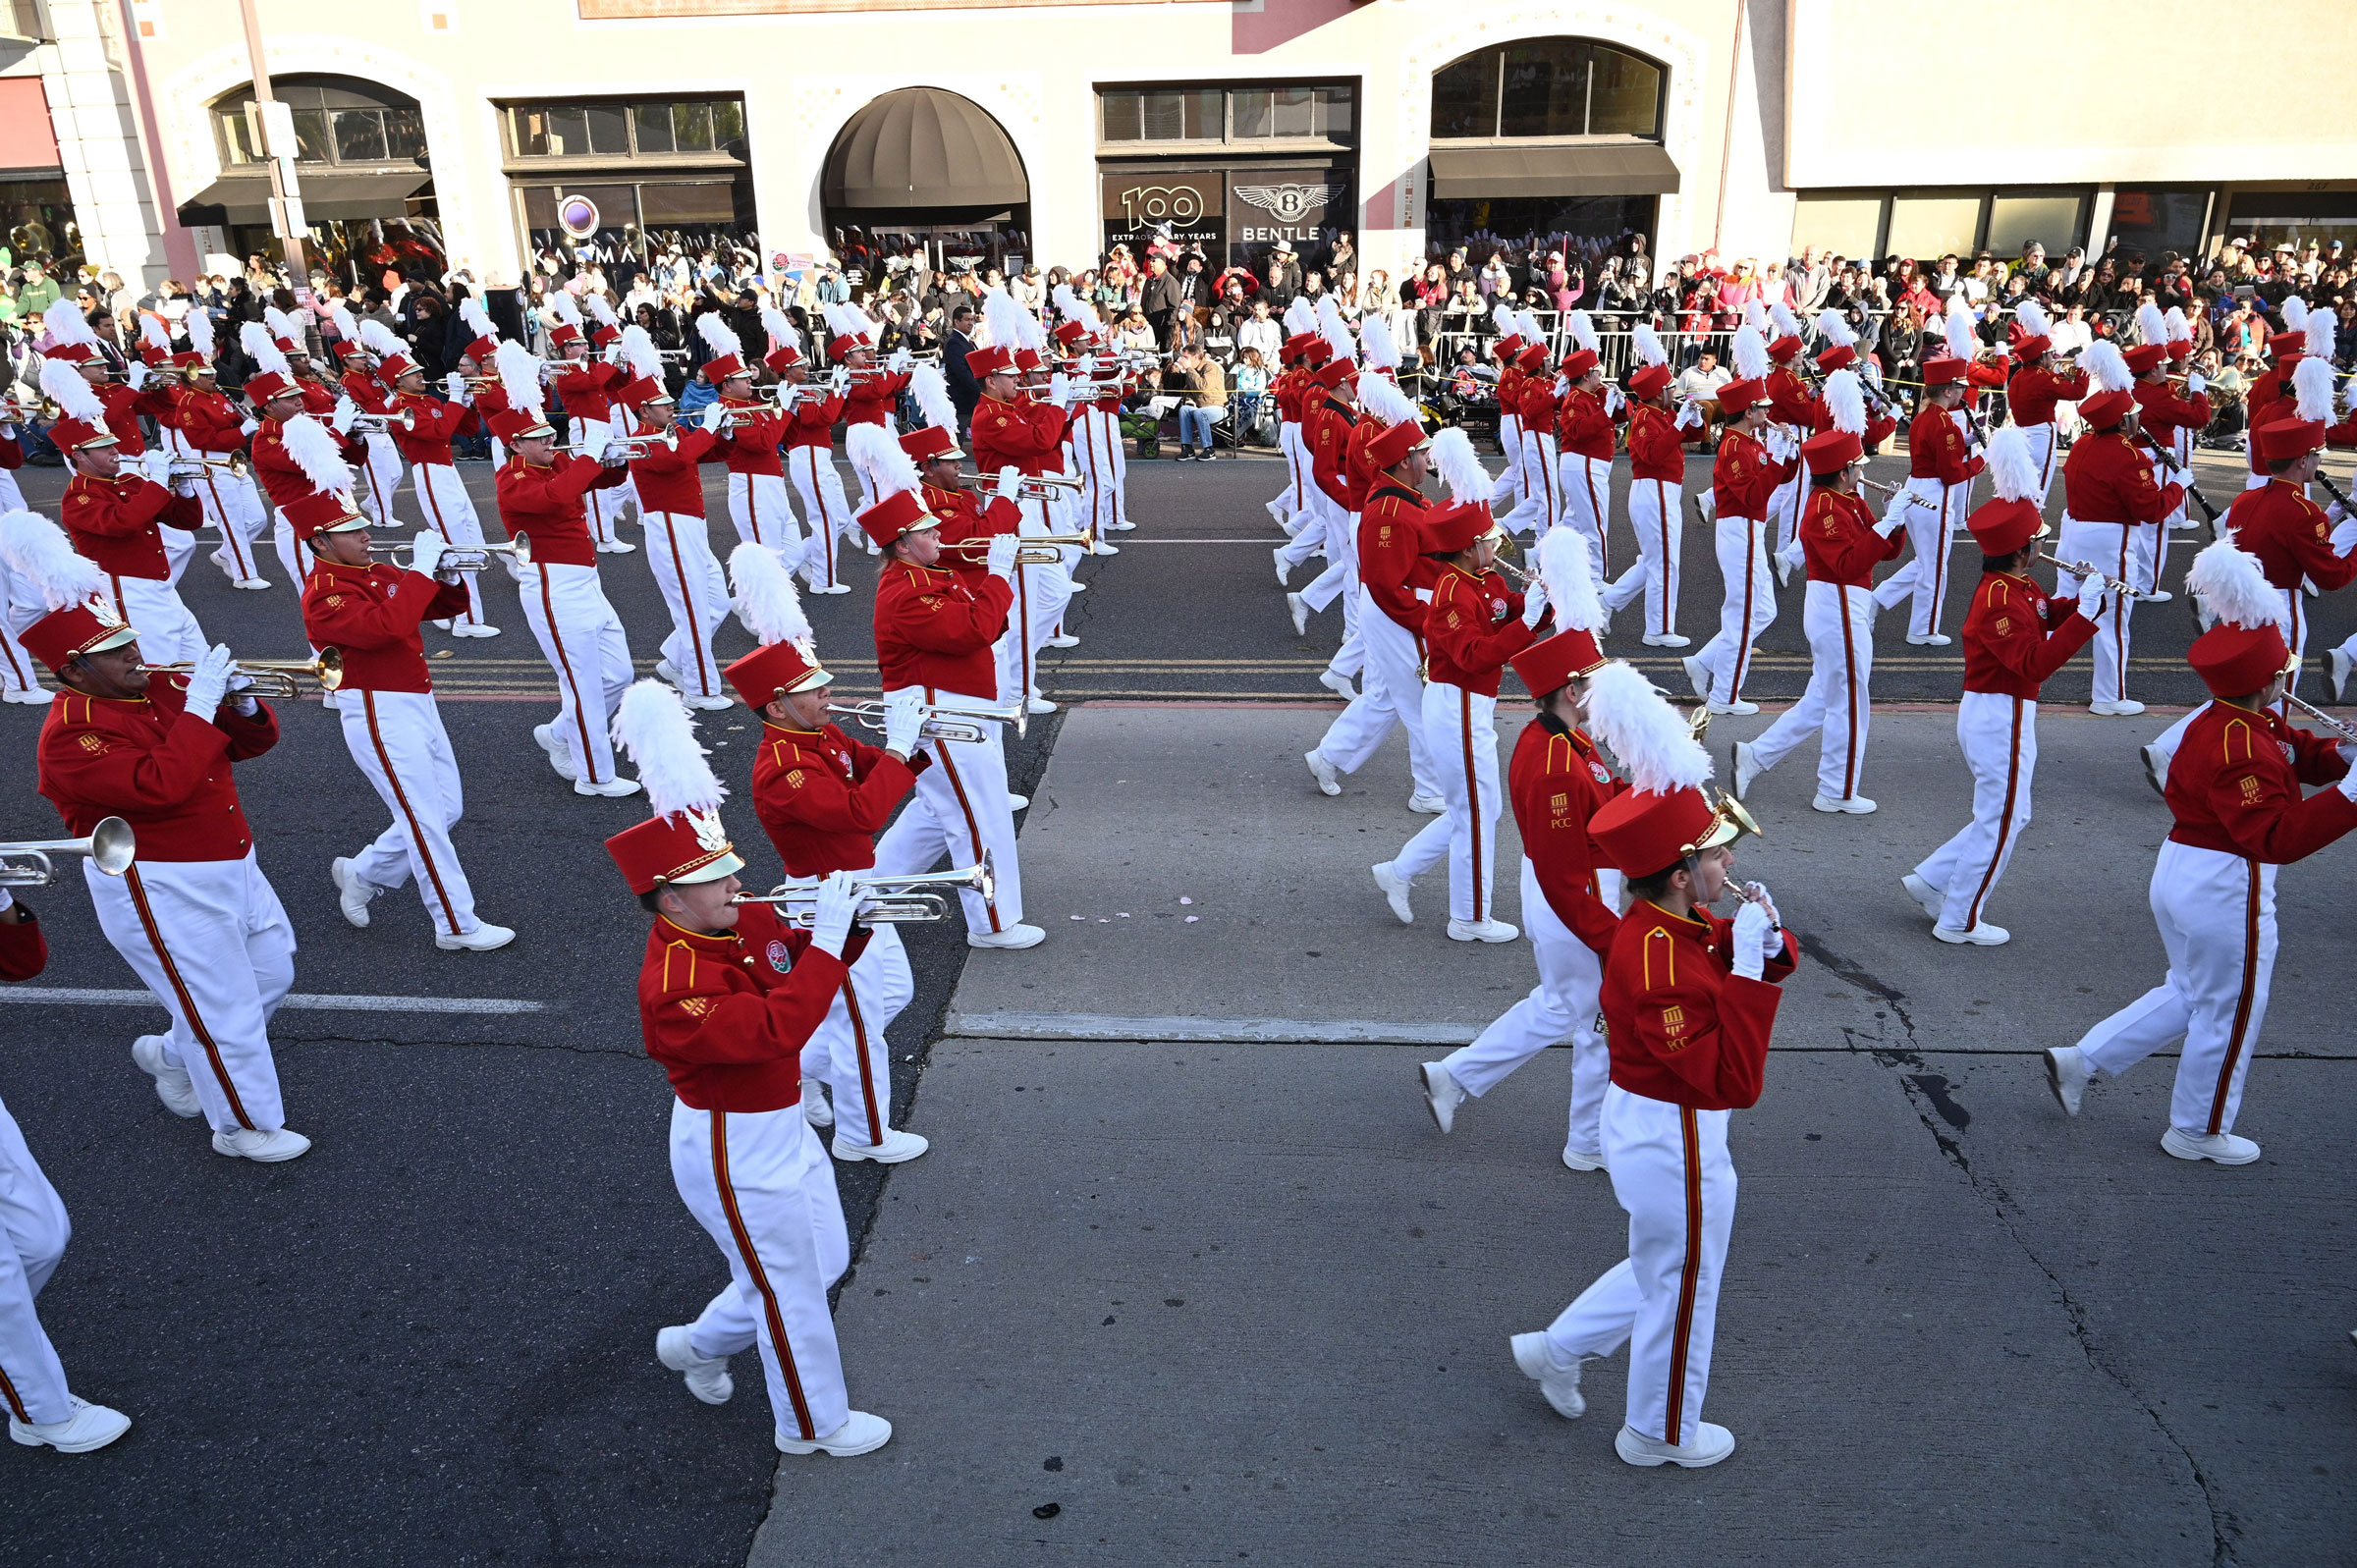 The Pasadena City College marching band participates in the Rose Parade on January 1.